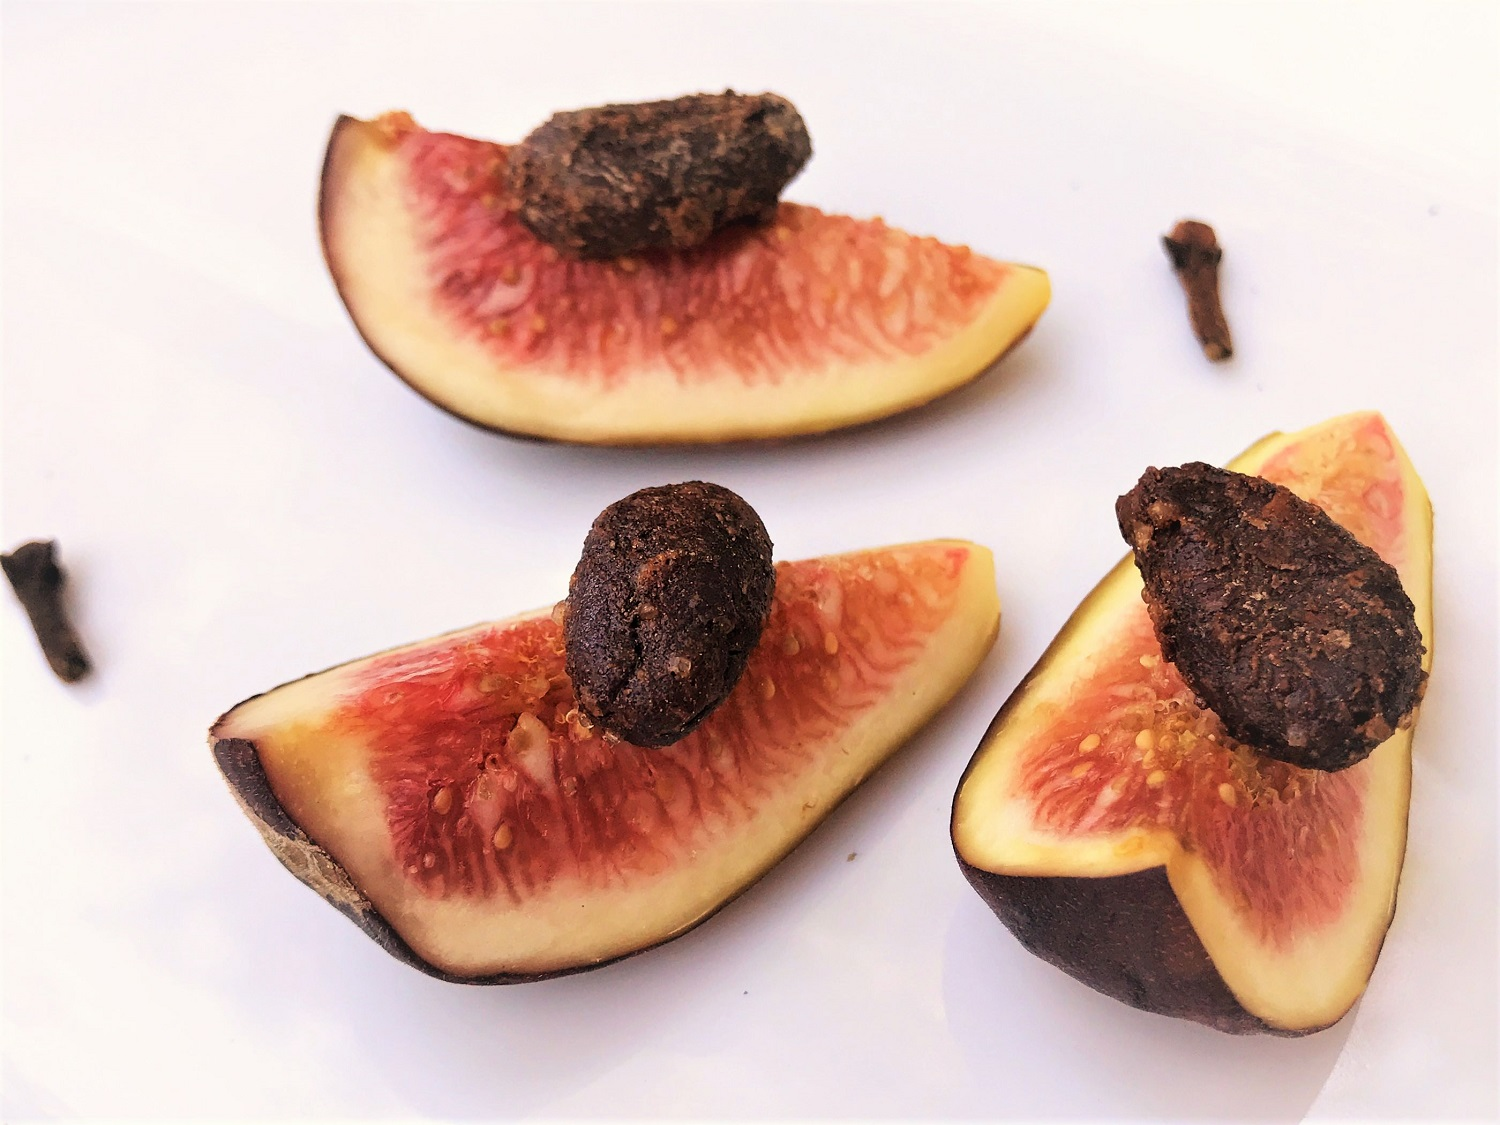 good-king-gourmet-snacking-cacao-love-cinnamon-nutmeg-cardamom-clove-fresh-black-mission-figs